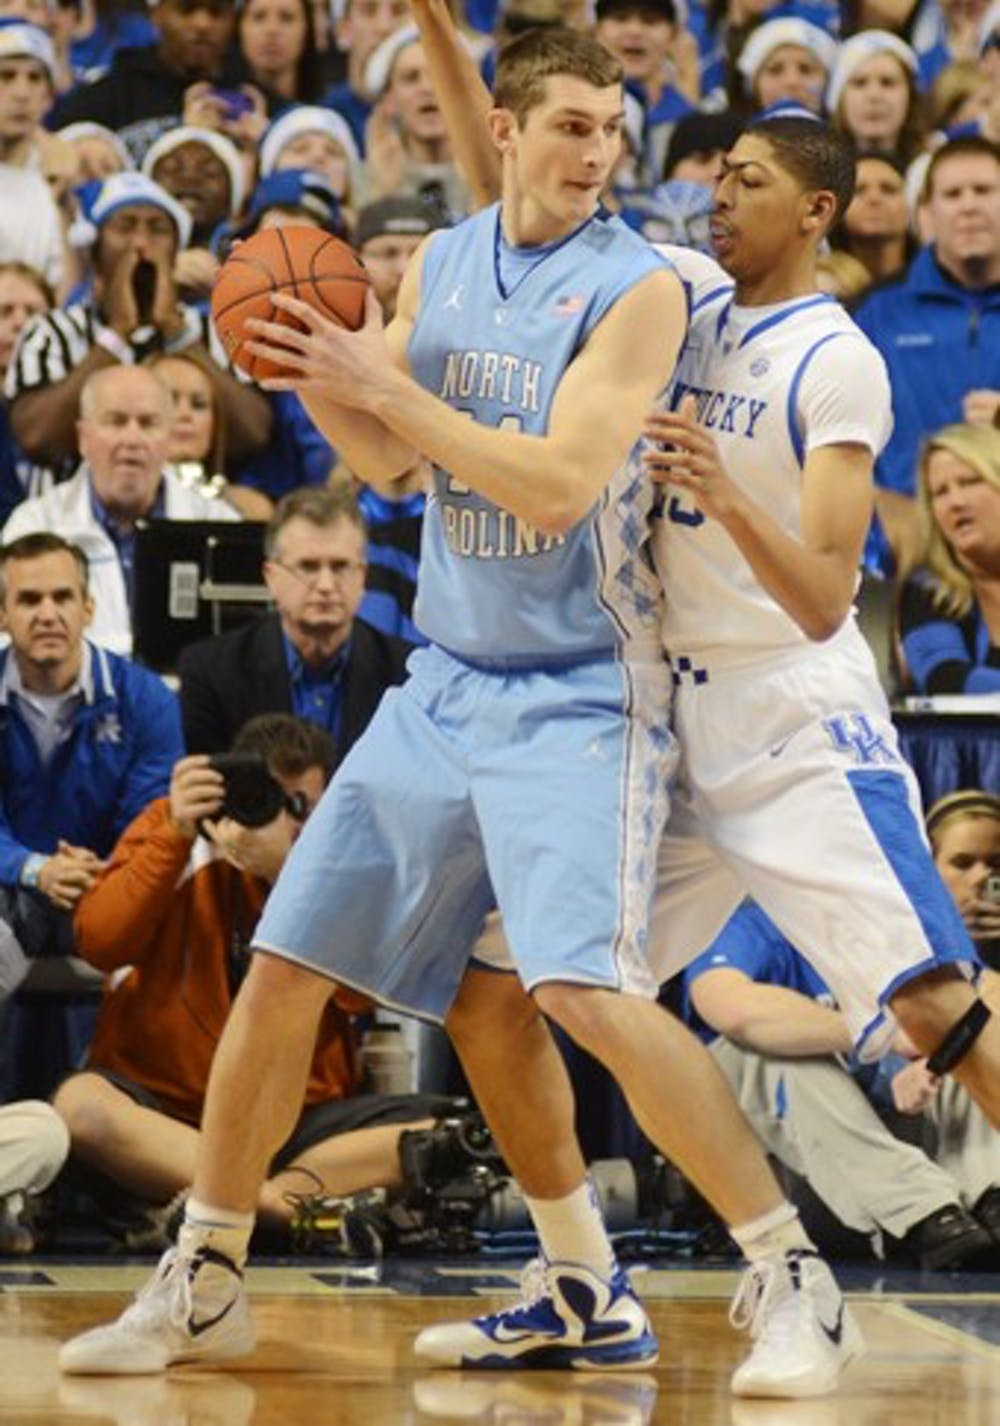 Kentucky thwarts UNC's last-ditch efforts in final seconds